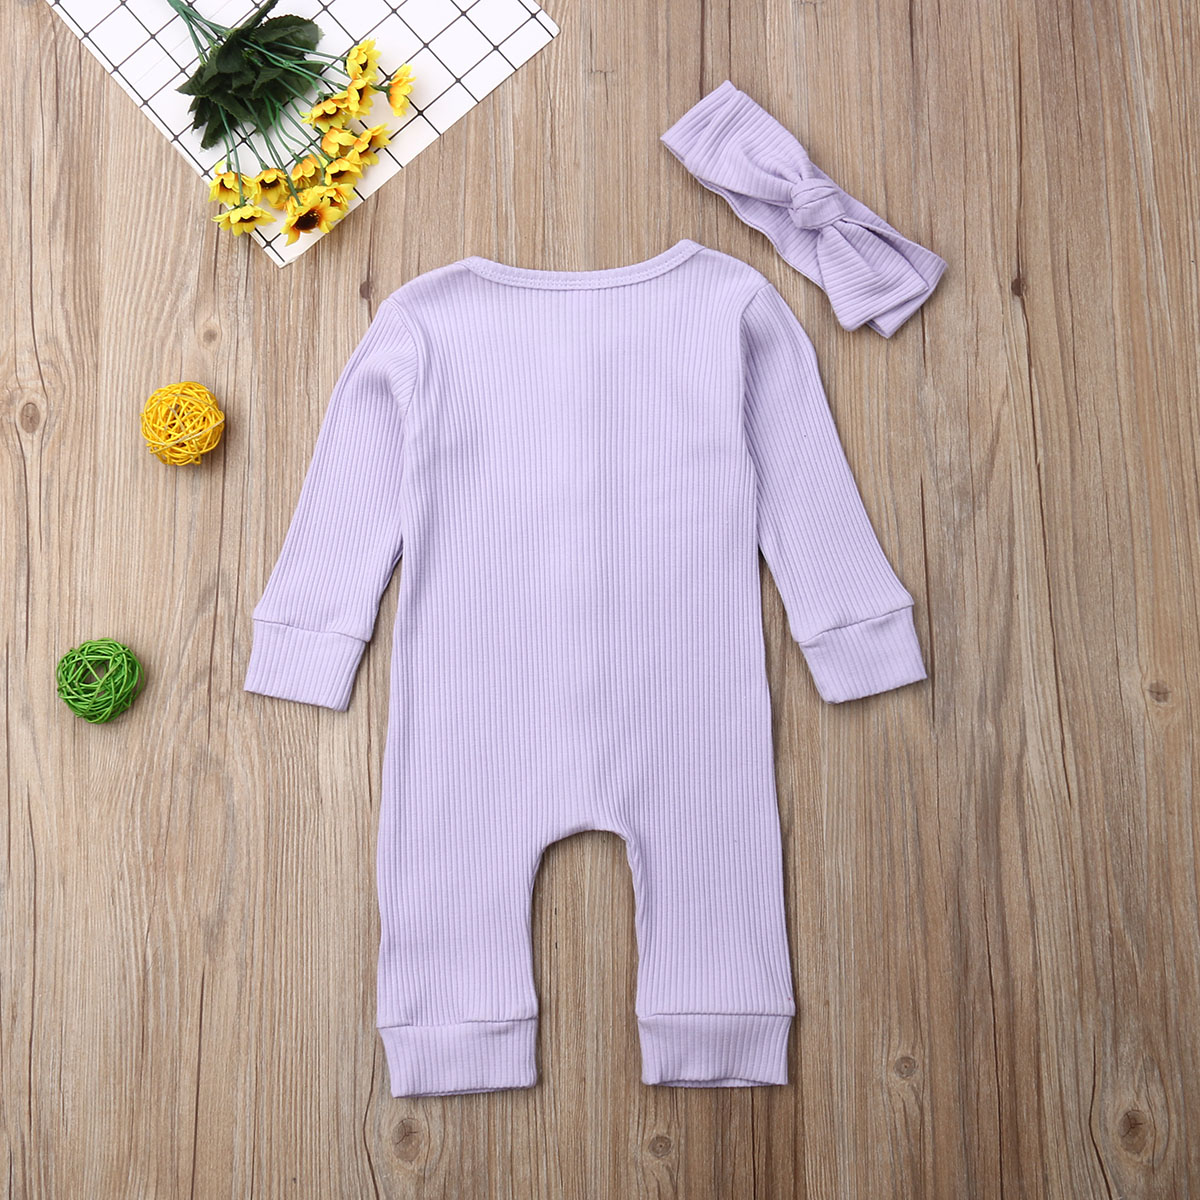 H69bf4959199c4134b53106a12390b494s Spring Fall Newborn Baby Girl Boy Clothes Long Sleeve Knitted Romper + Headband Jumpsuit 2PCS Outfit 0-24M